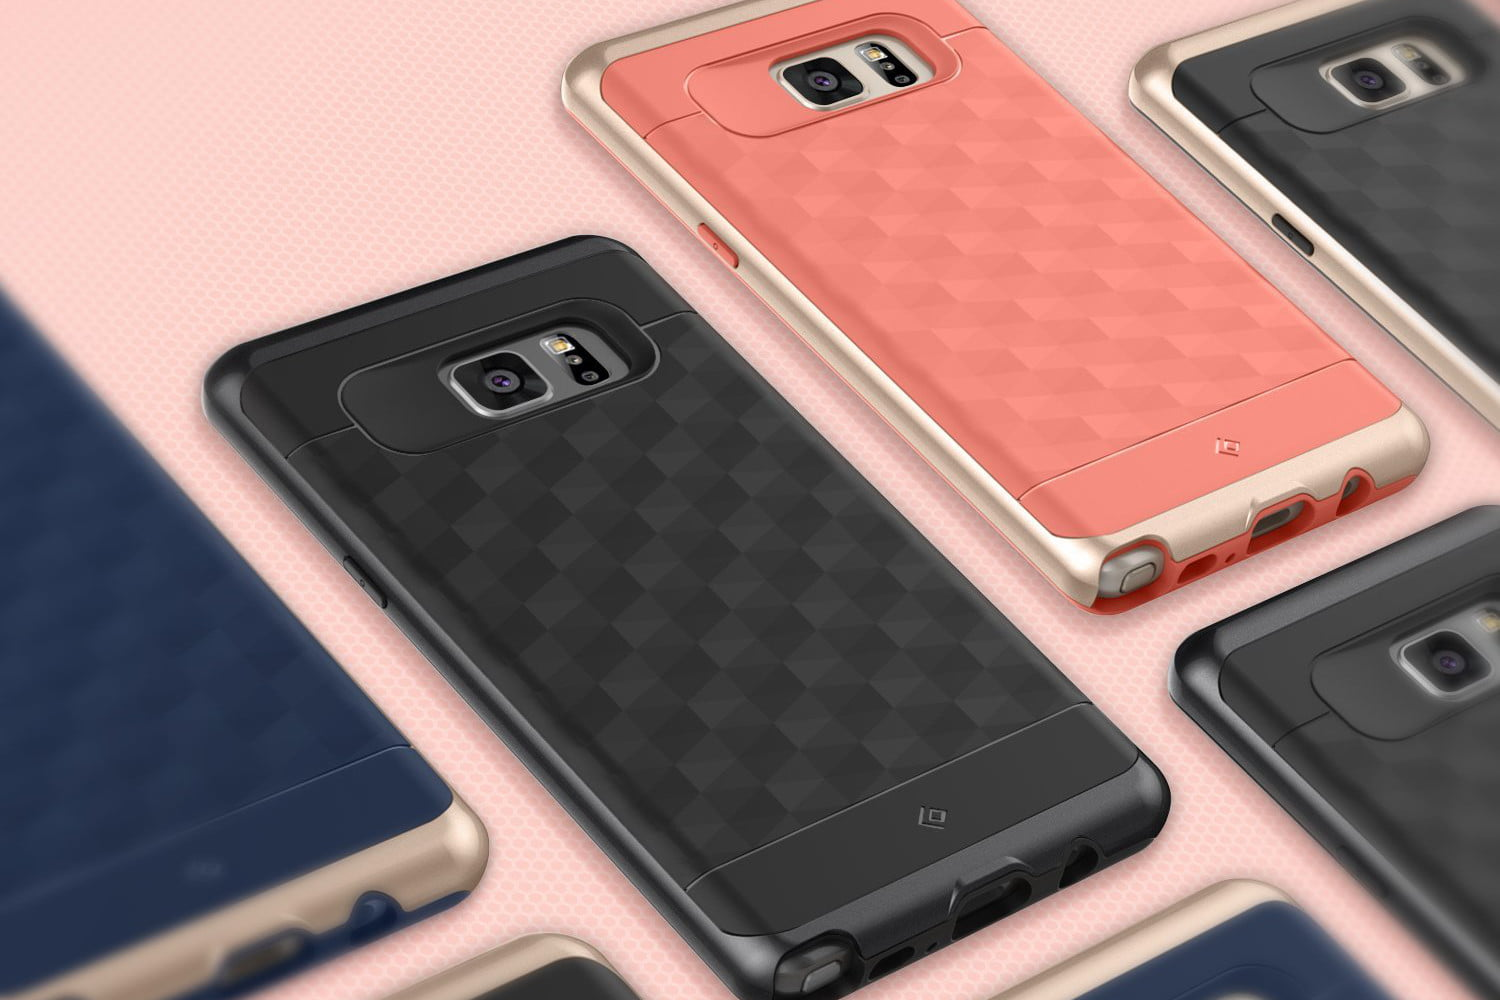 The 15 Best Galaxy Note 7 Cases And Covers Digital Trends